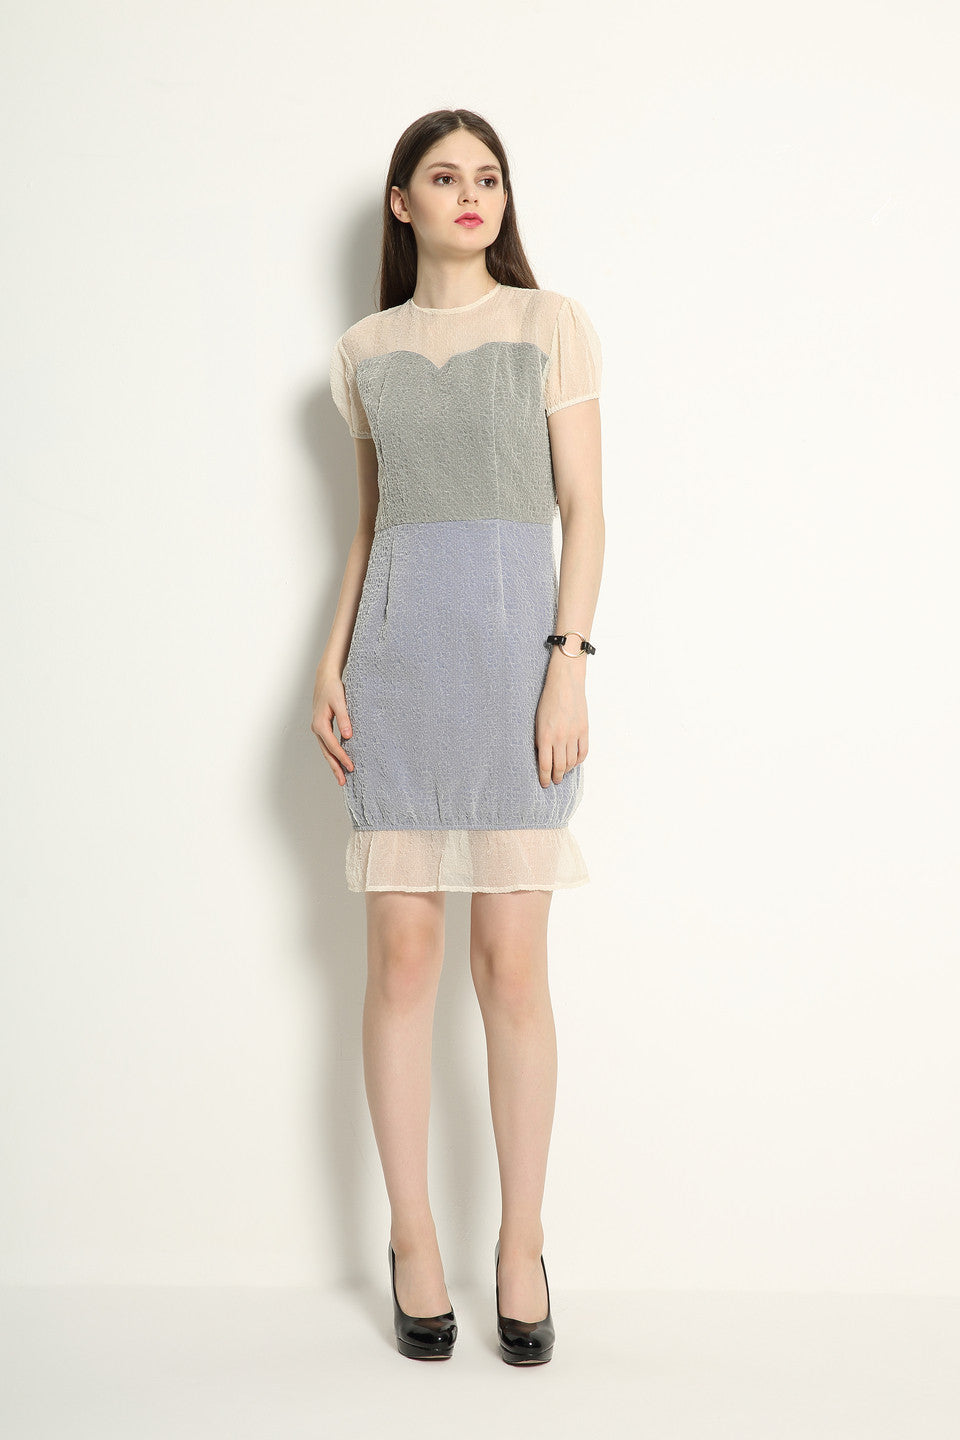 Organza Double Layered Contrast Dress - GlanceZ   - 3